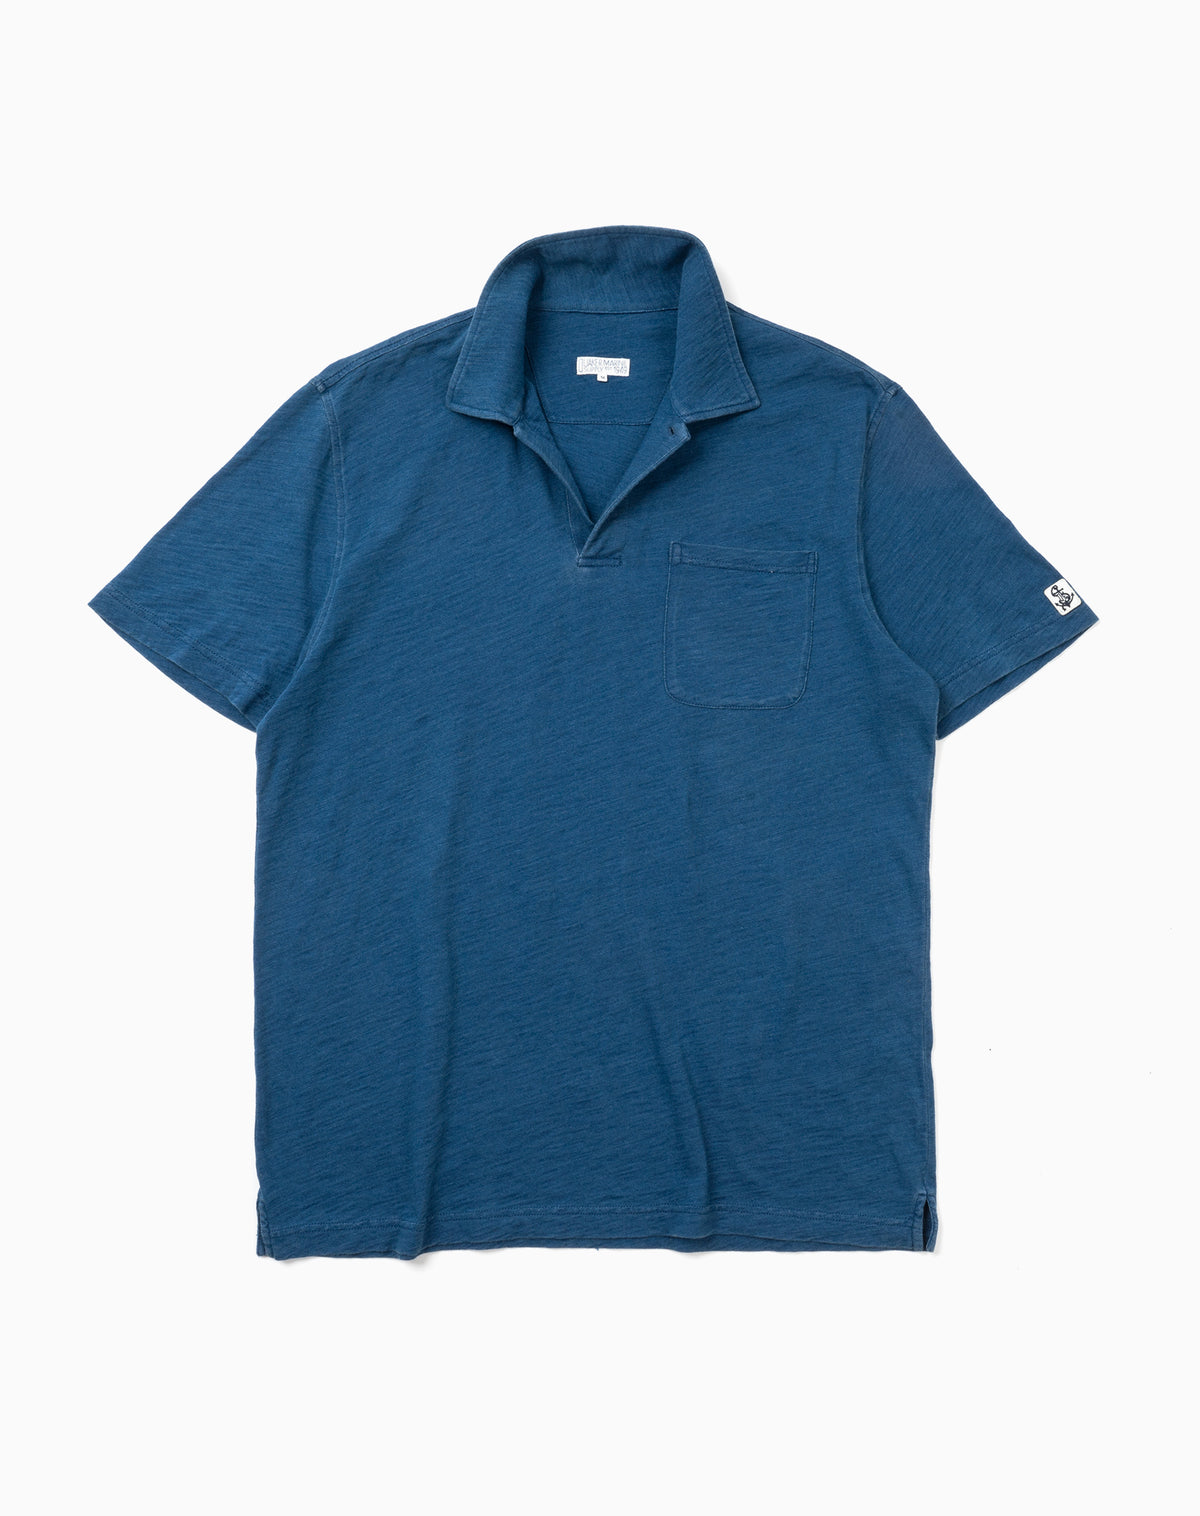 Indigo Polo in Navy Slub